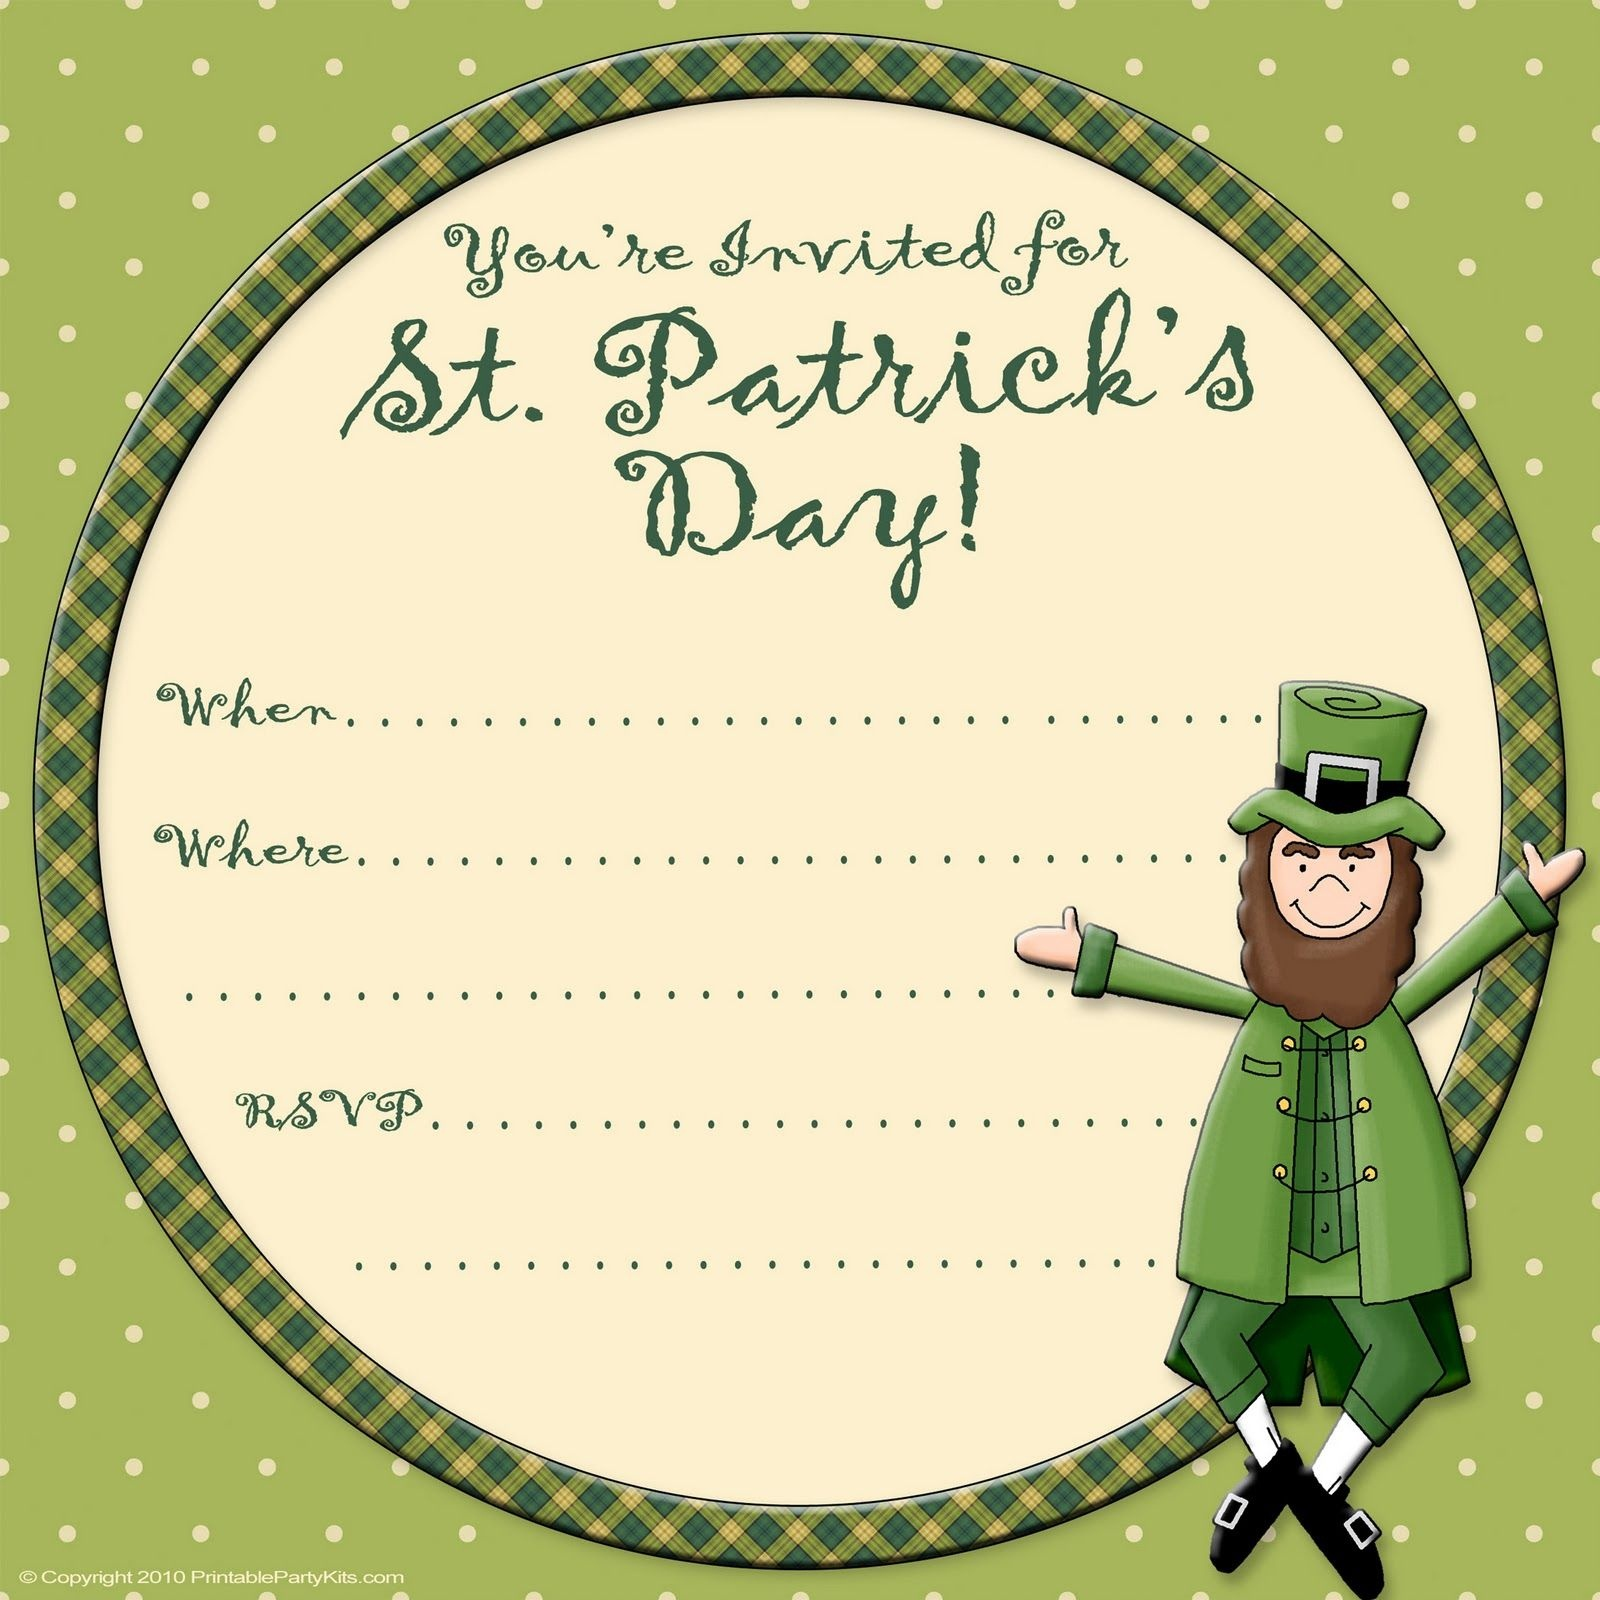 Free Printable Party Invitations: Free St. Patrick's Day Invite - Free Printable St Patrick's Day Card